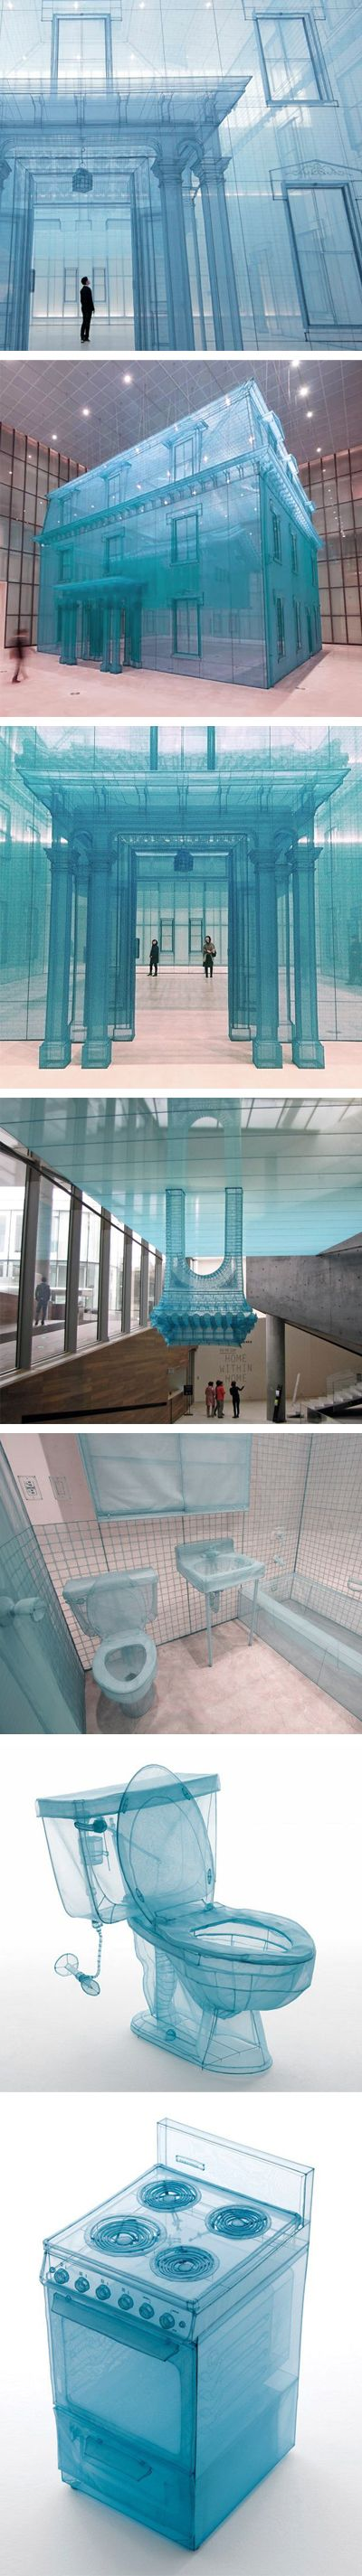 Do Ho Suh #installation #art